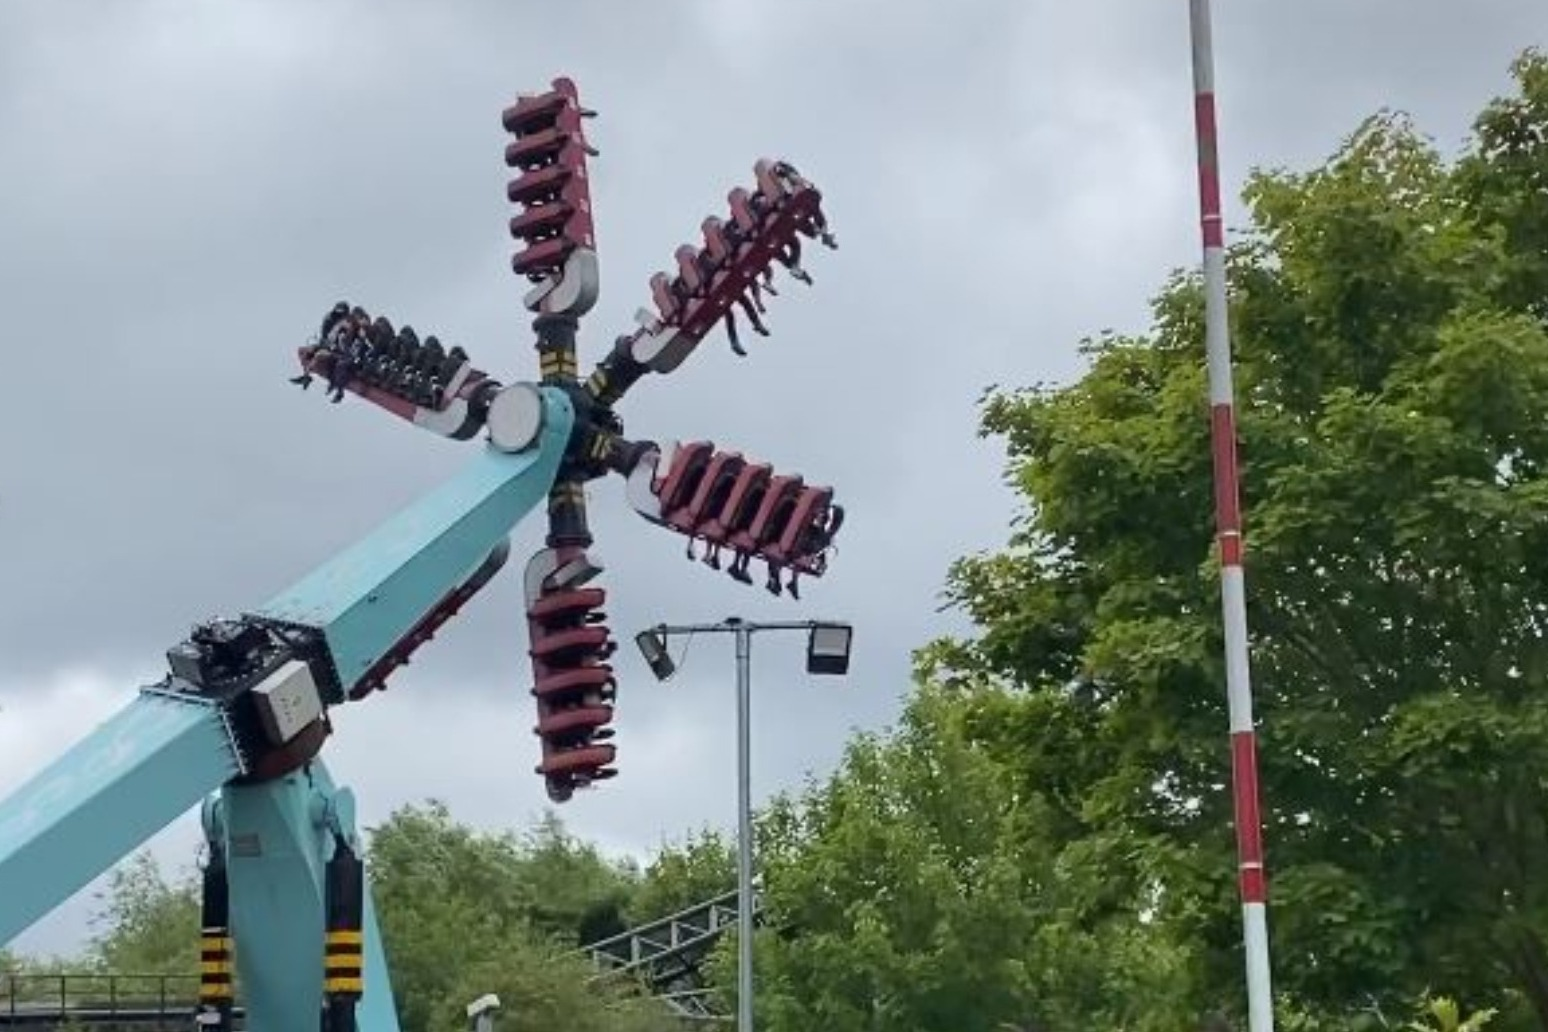 Thorpe Park remains closed after stabbing